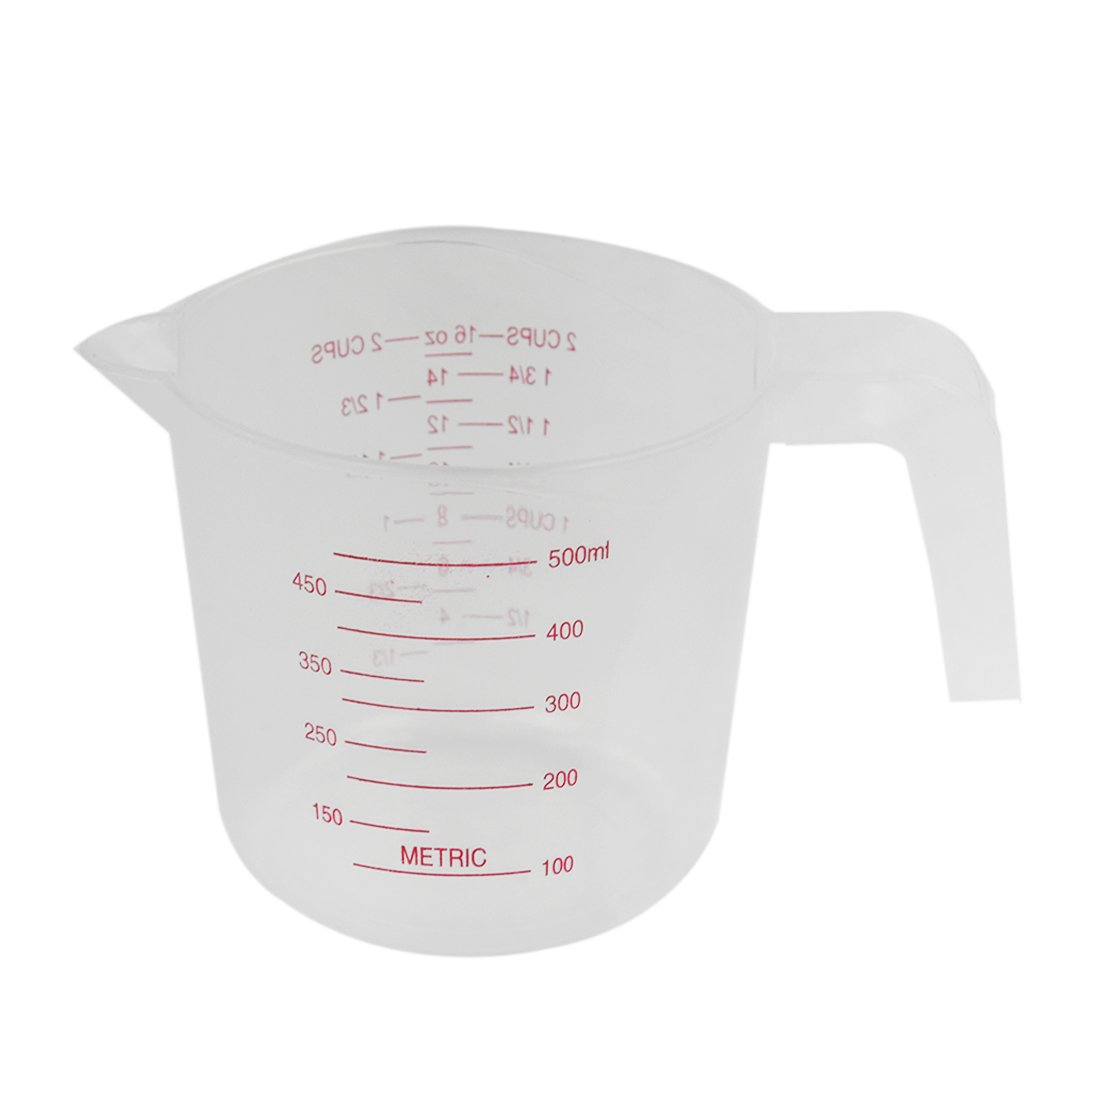 TOOGOO(R) 500ml Home Lab Measuring Jug Pitcher Plastic Handle Pour Spout Container SHOMAGT12483